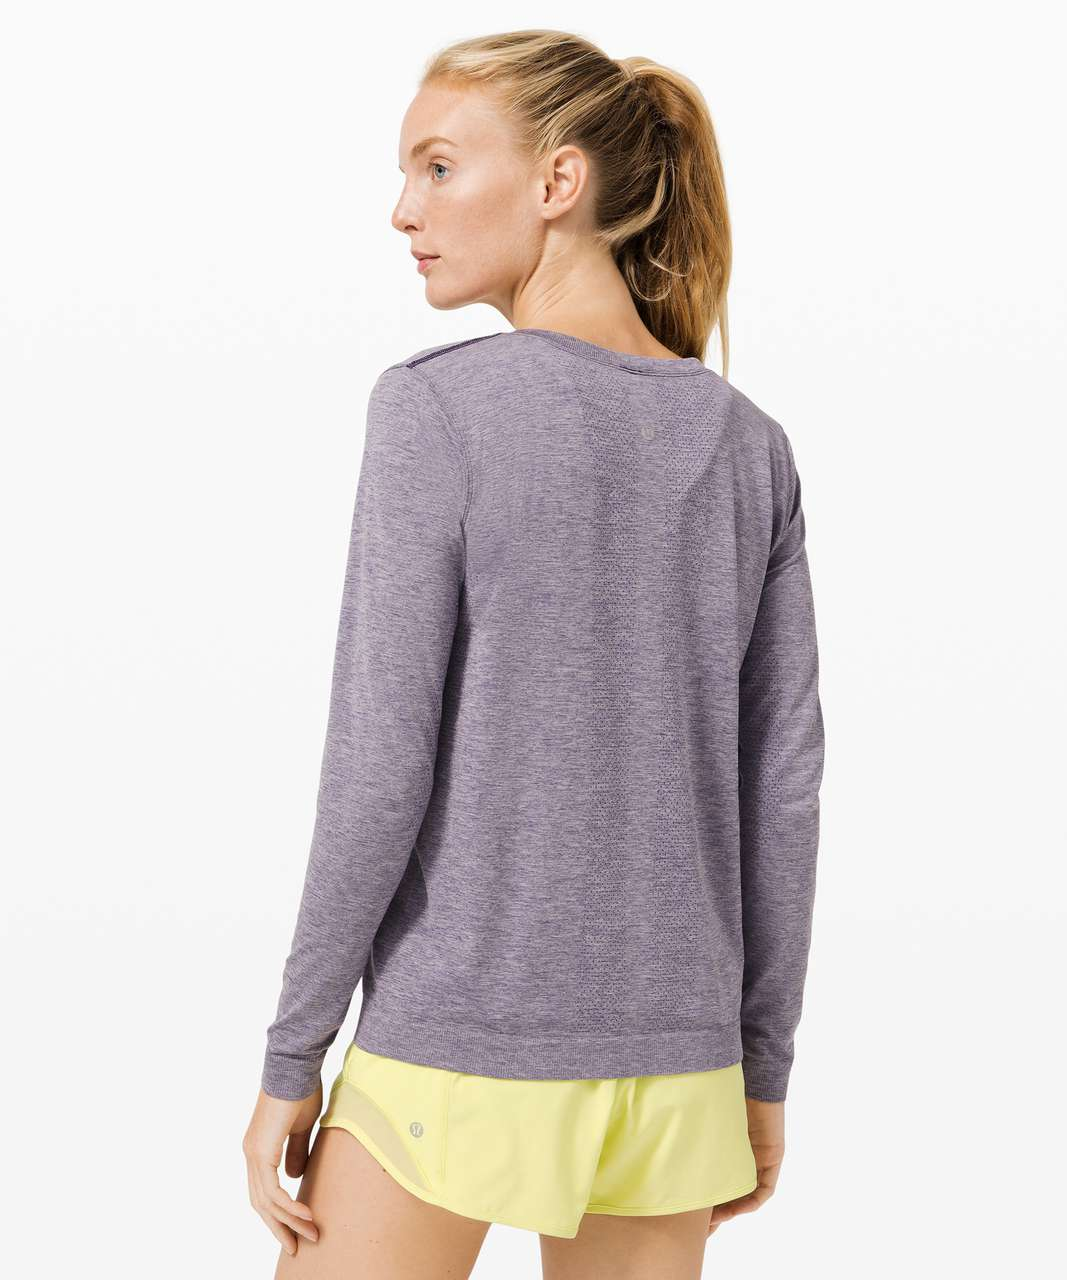 Lululemon Swiftly Relaxed Long Sleeve 2.0 - Midnight Orchid / Iced Iris